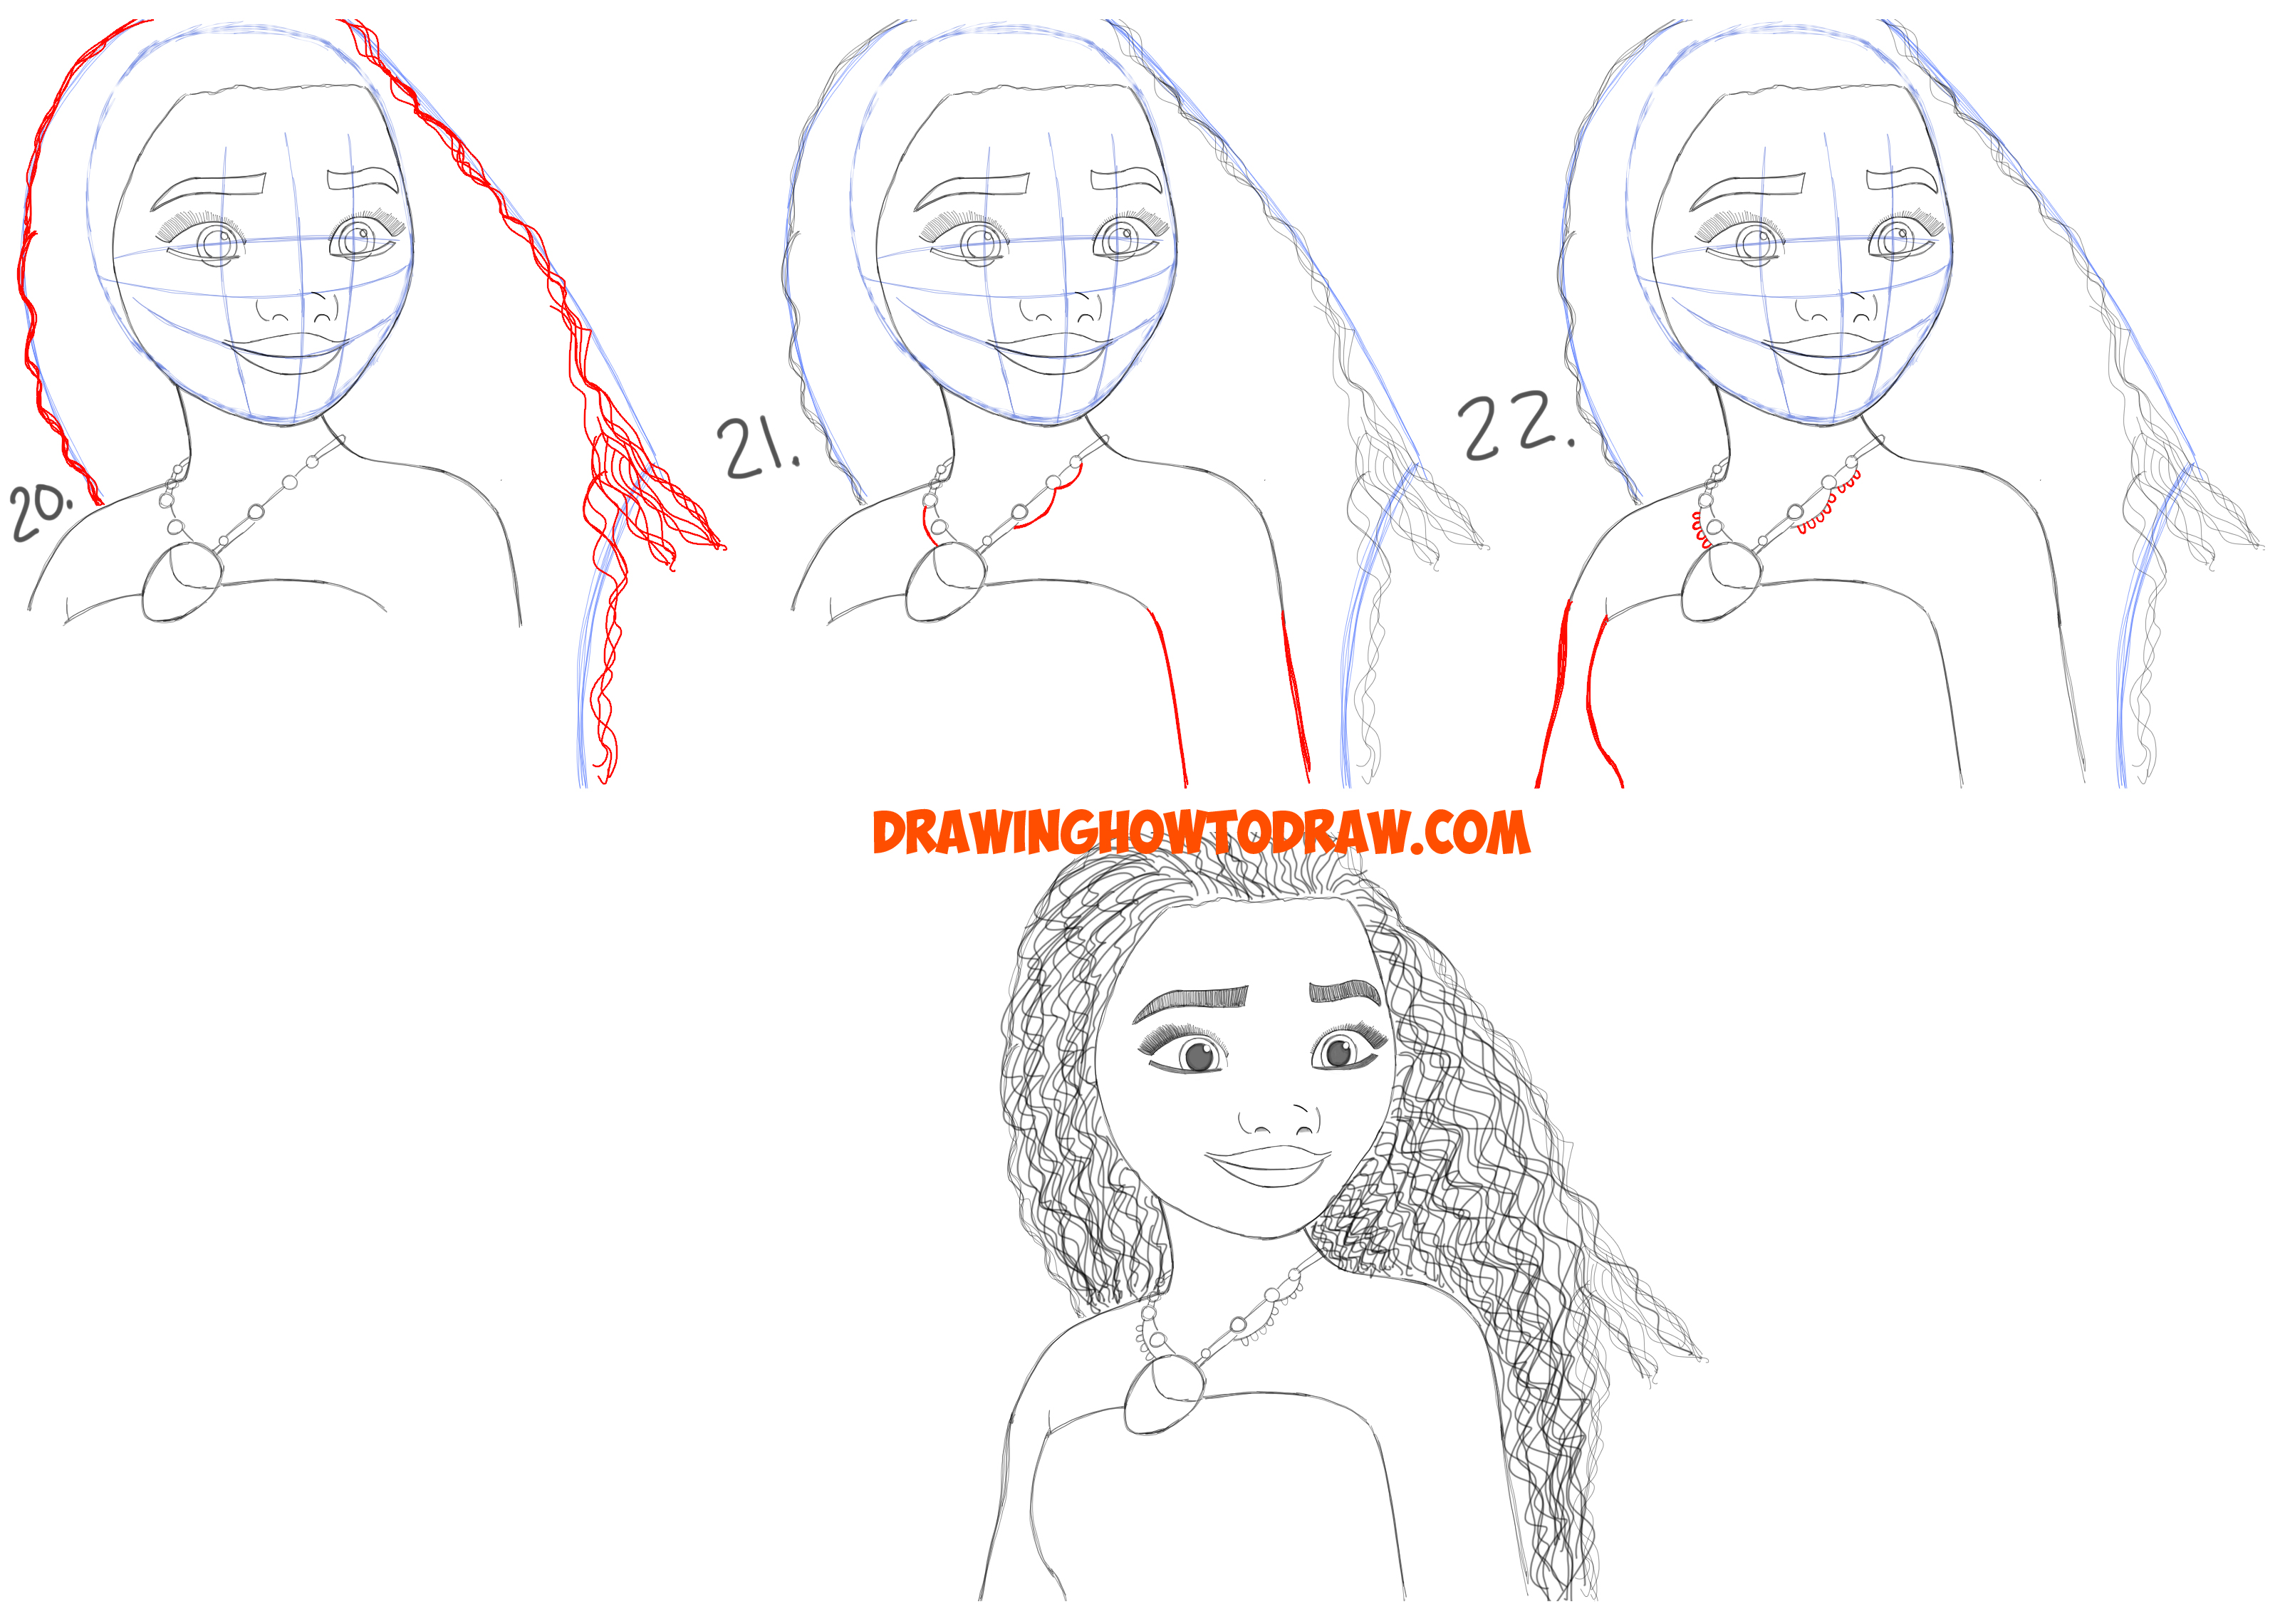 Learn How to Draw Moana from Disney's Moana with Simple Steps Drawing Lesson for Kids and Beginners